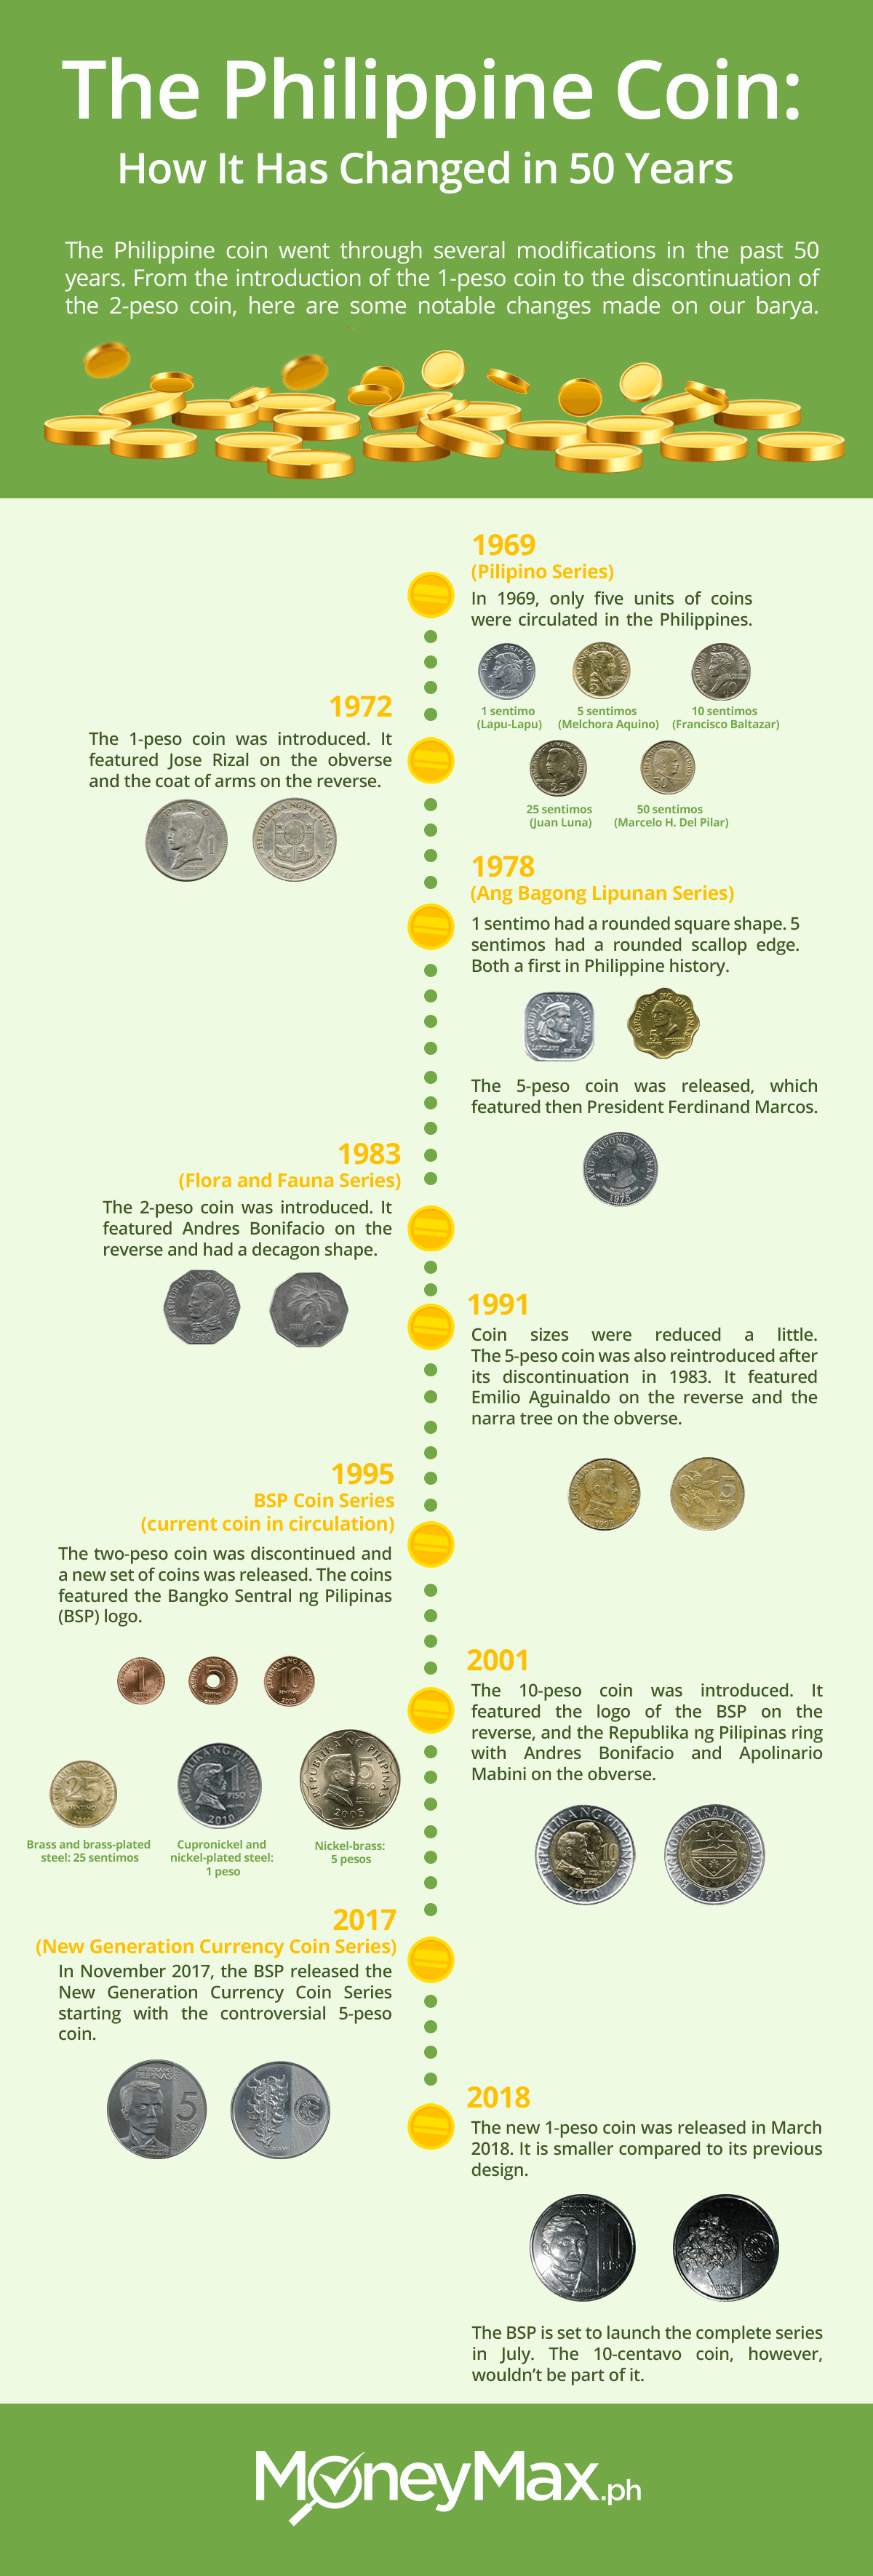 The Philippine Coin: How It Has Changed in 50 Years